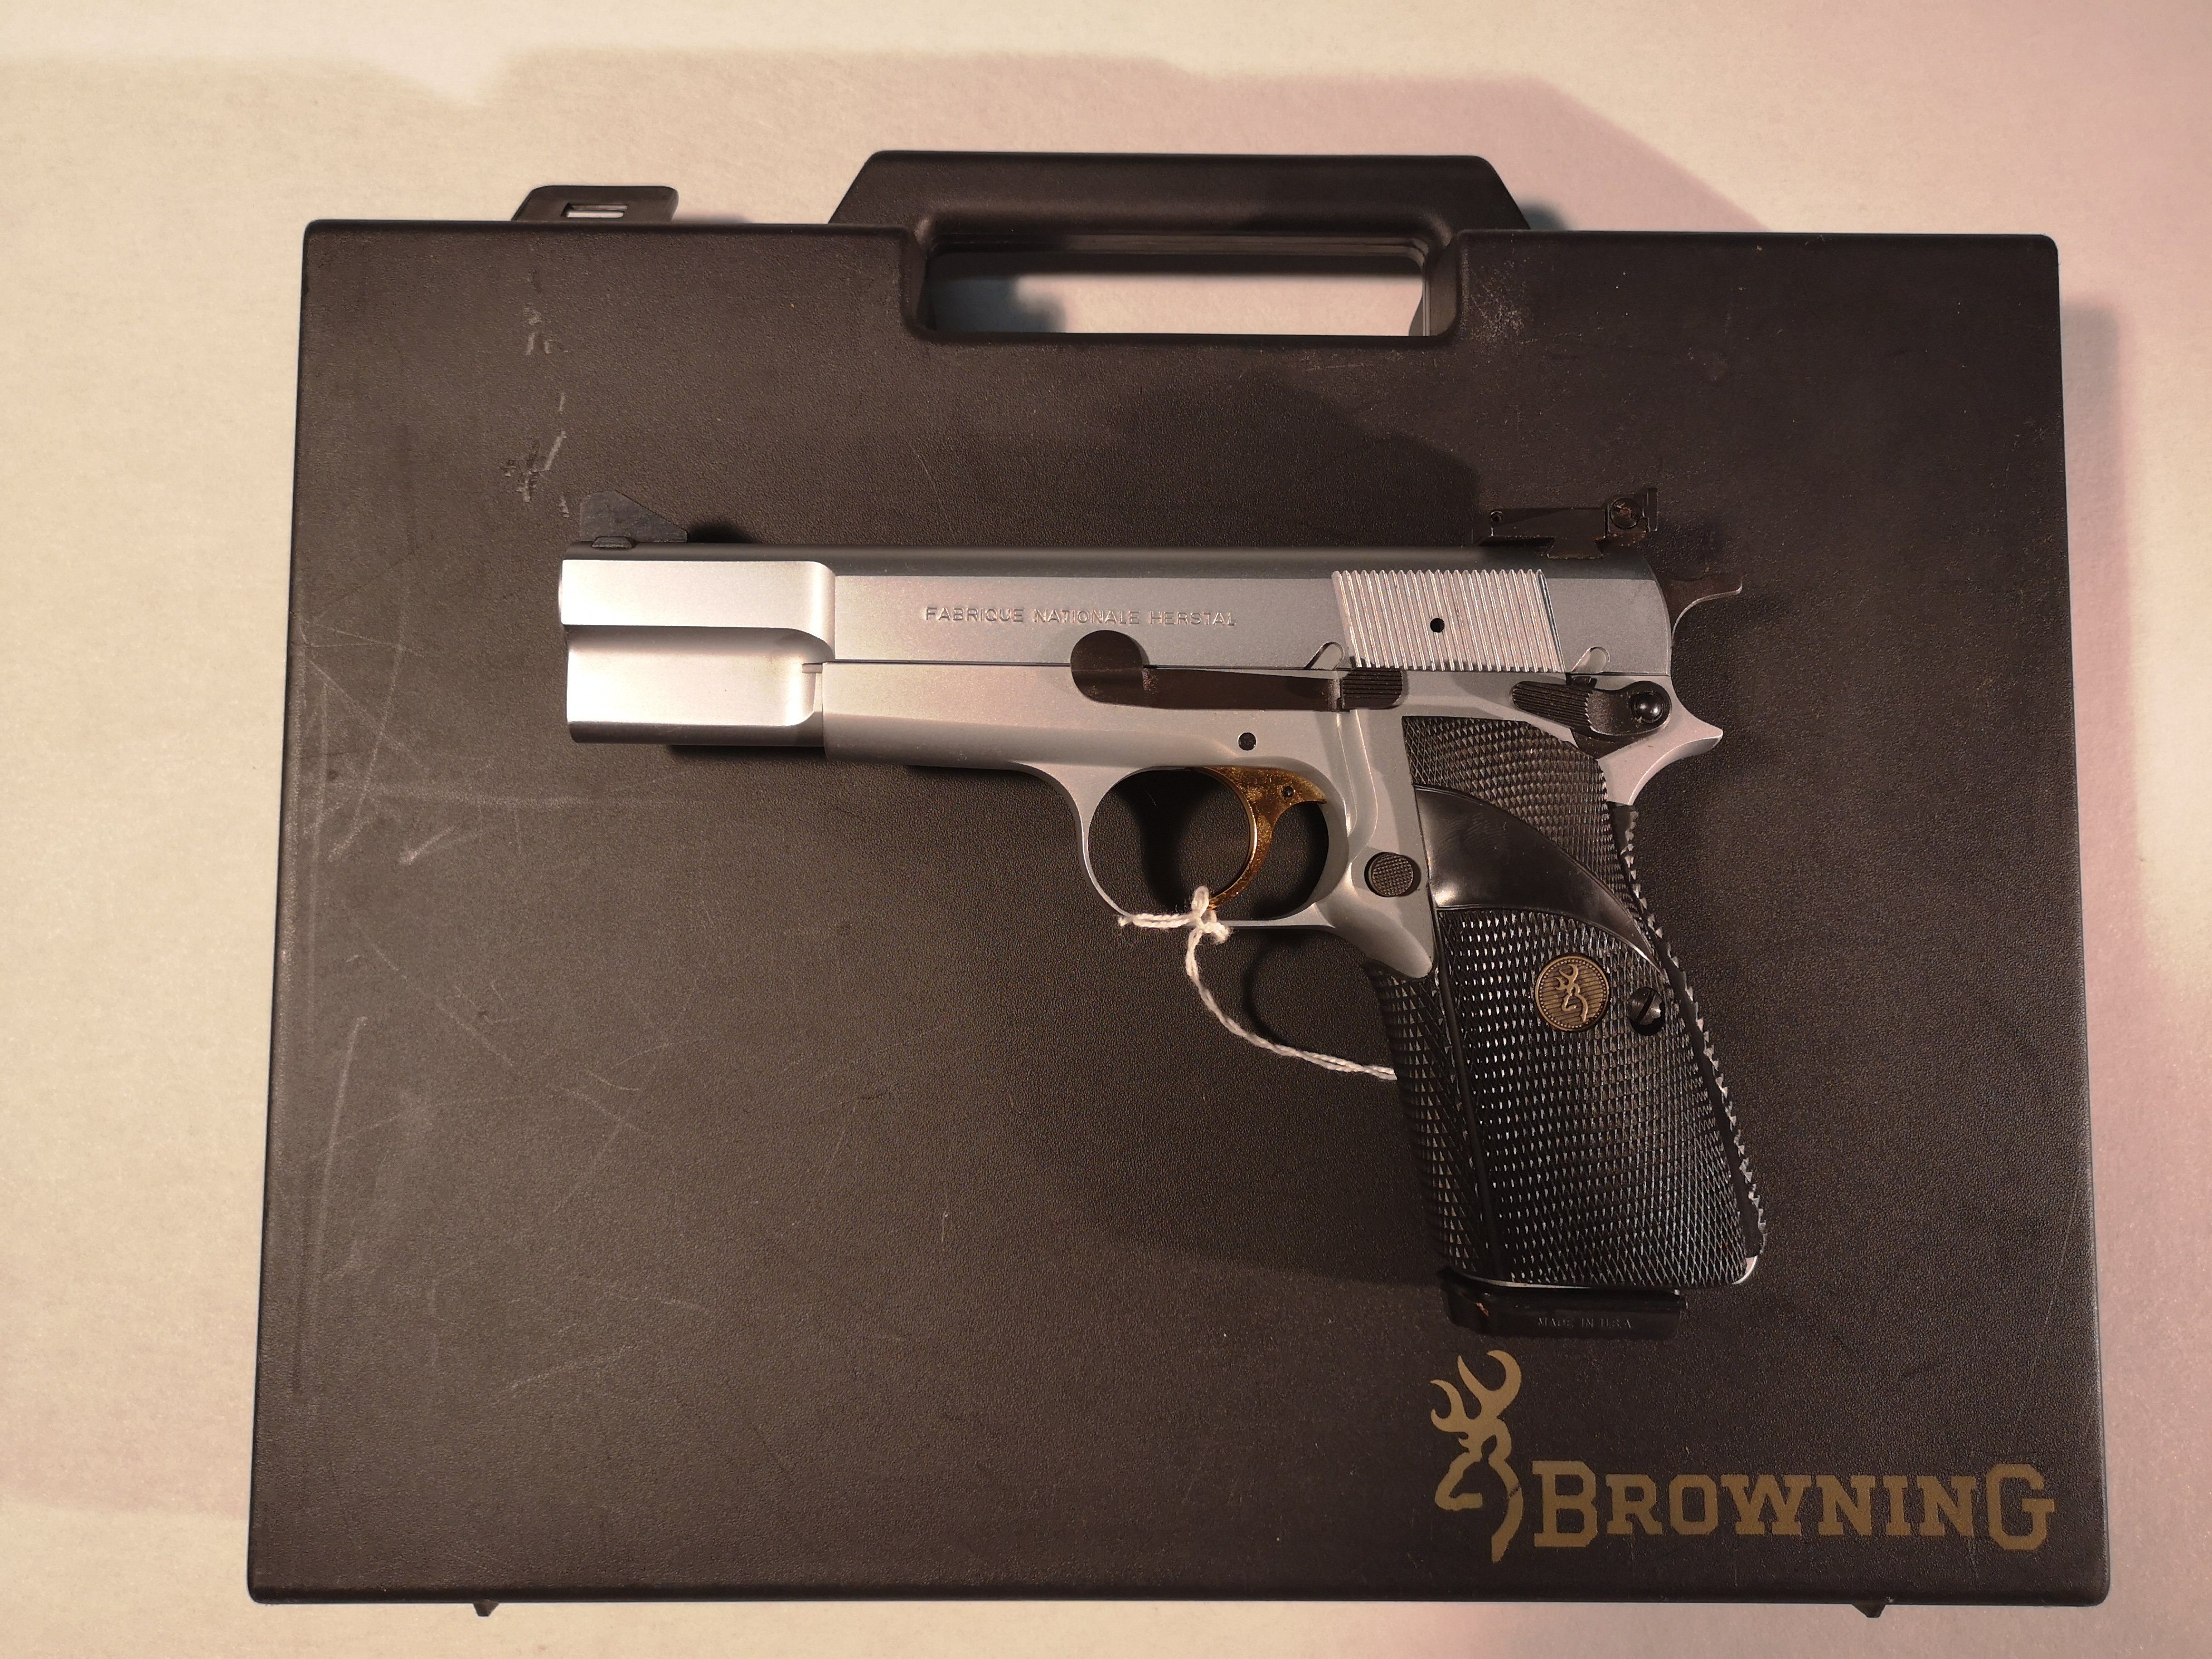 FN Browning Model Silver Chrome - kal. 9x19